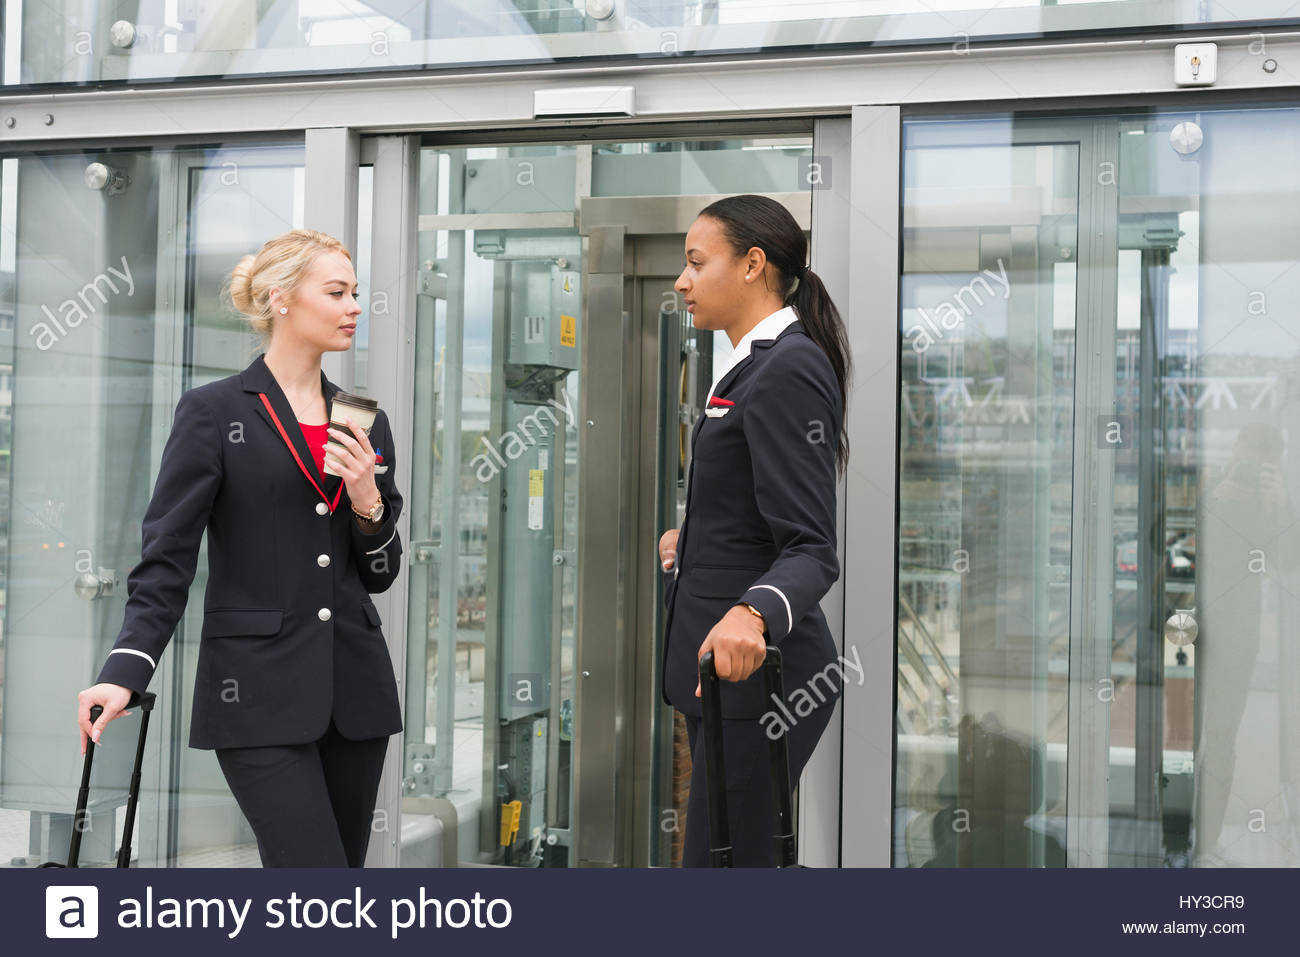 Norway, Oslo, Stewardesses standing with suitcases - Stock Image